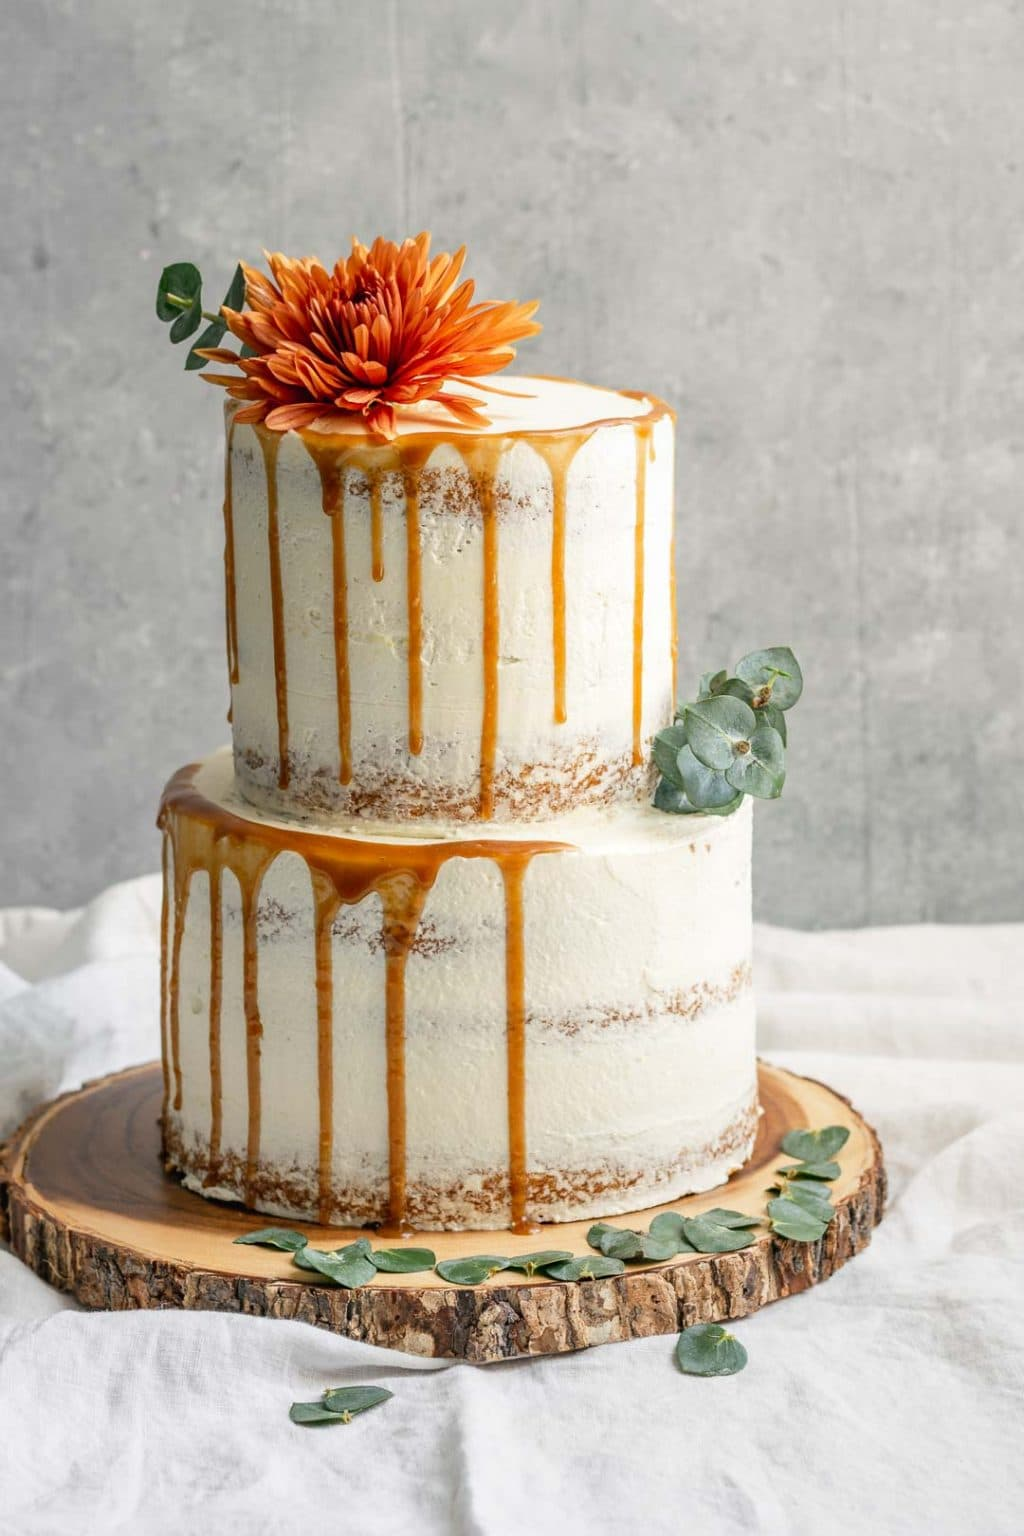 A 2-tier easy vegan vanilla cake decorated with flowers and a salted caramel drip